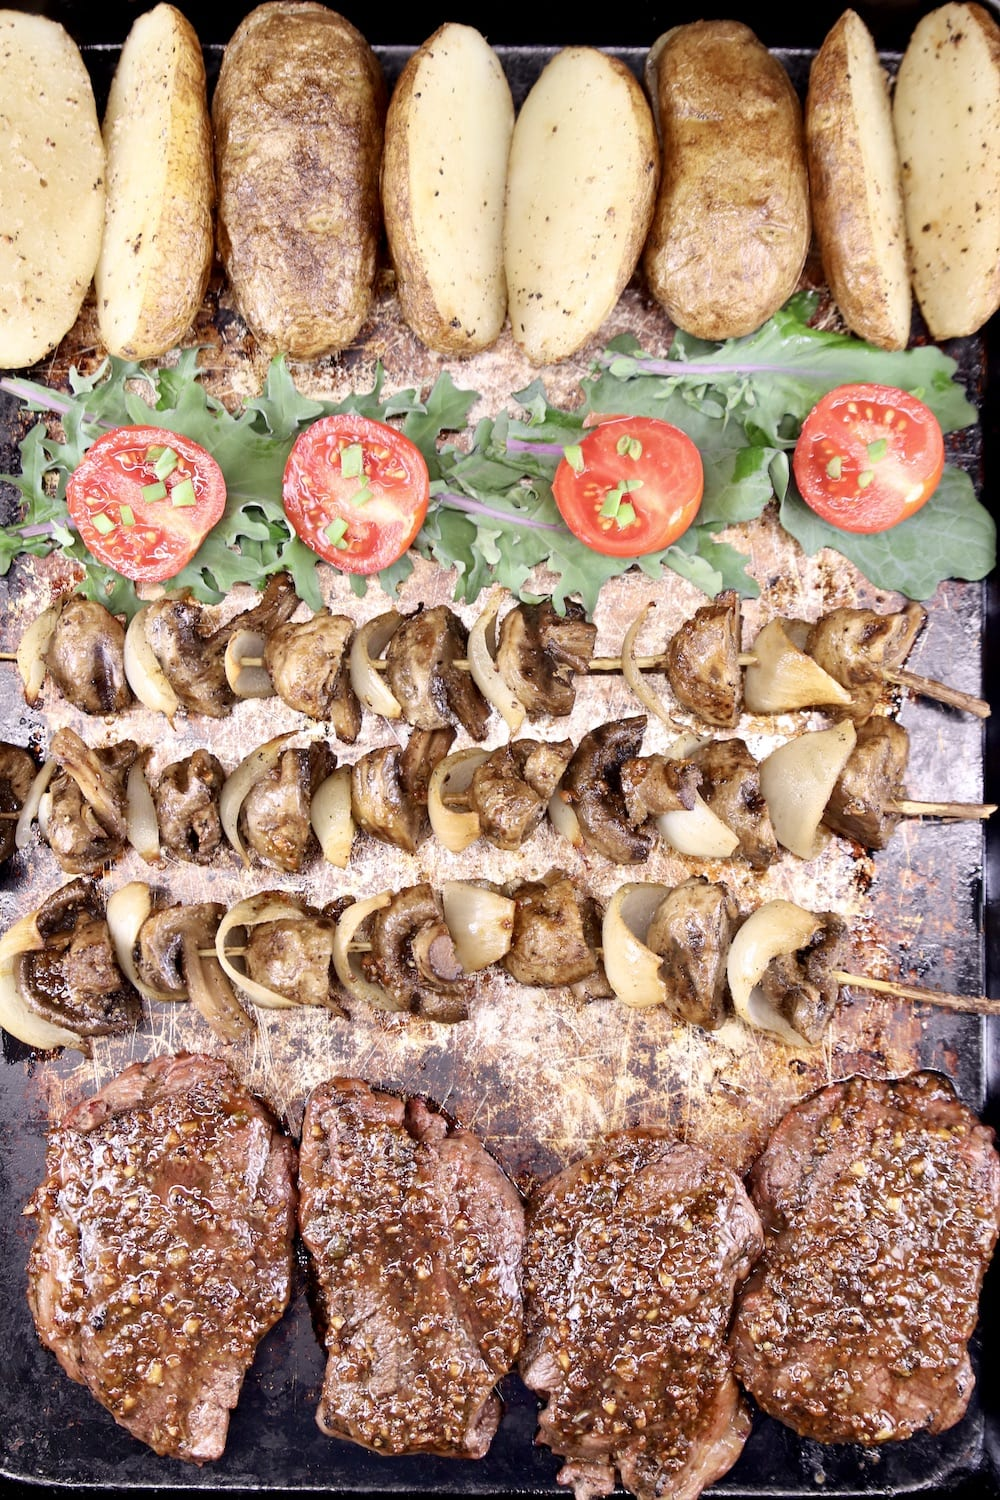 sheet pan with grilled steaks, potatoes, mushrooms on skewers, lettuce and tomato